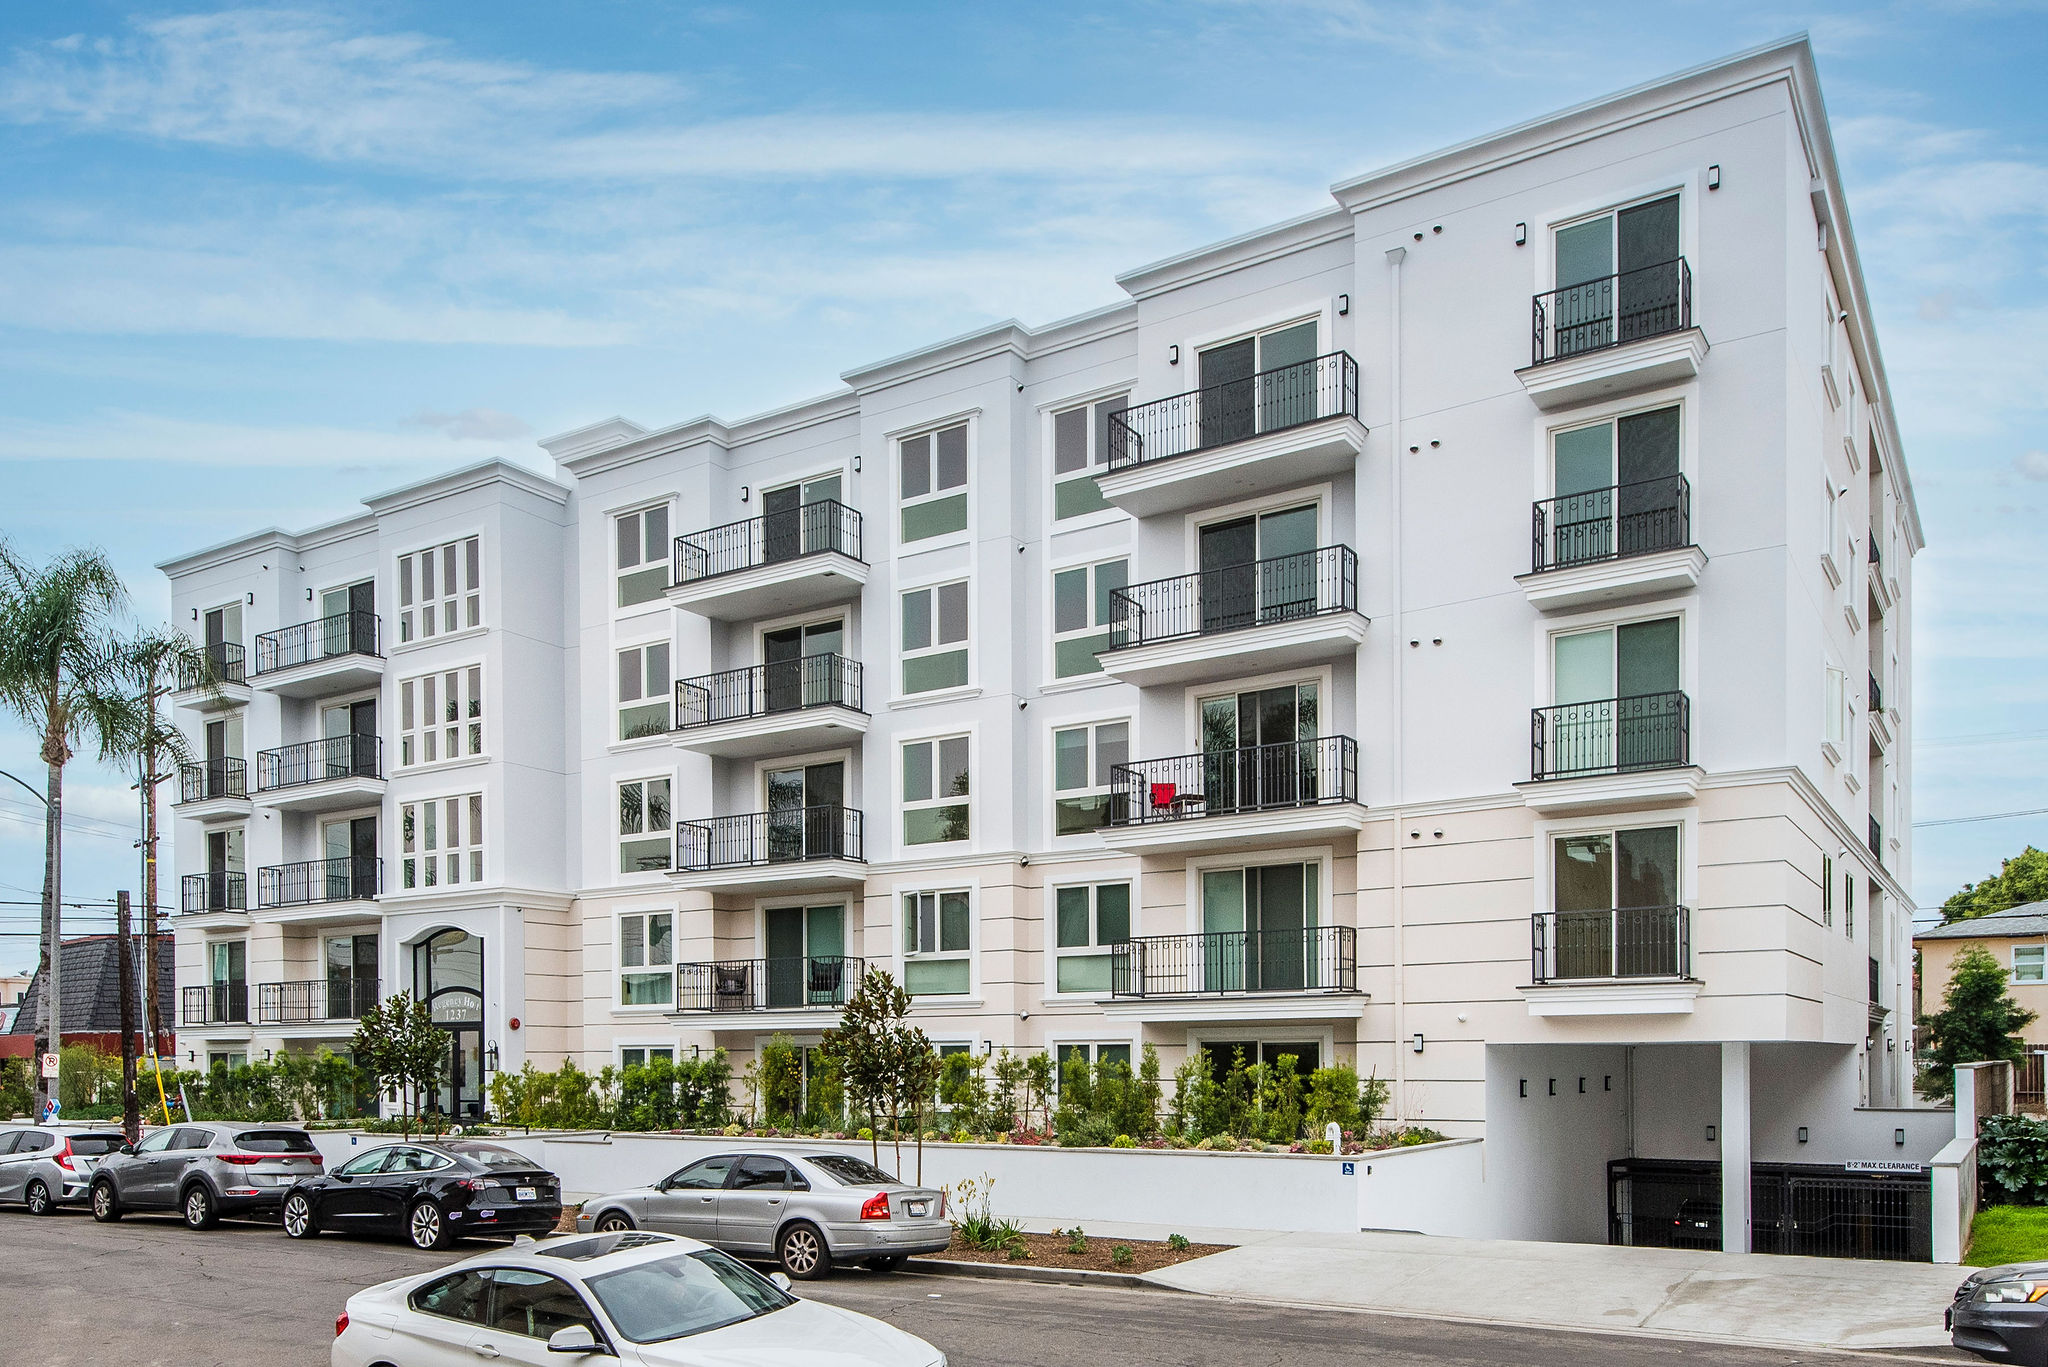 The Regency Holt Completes Lease-Up for Avenue Apartments